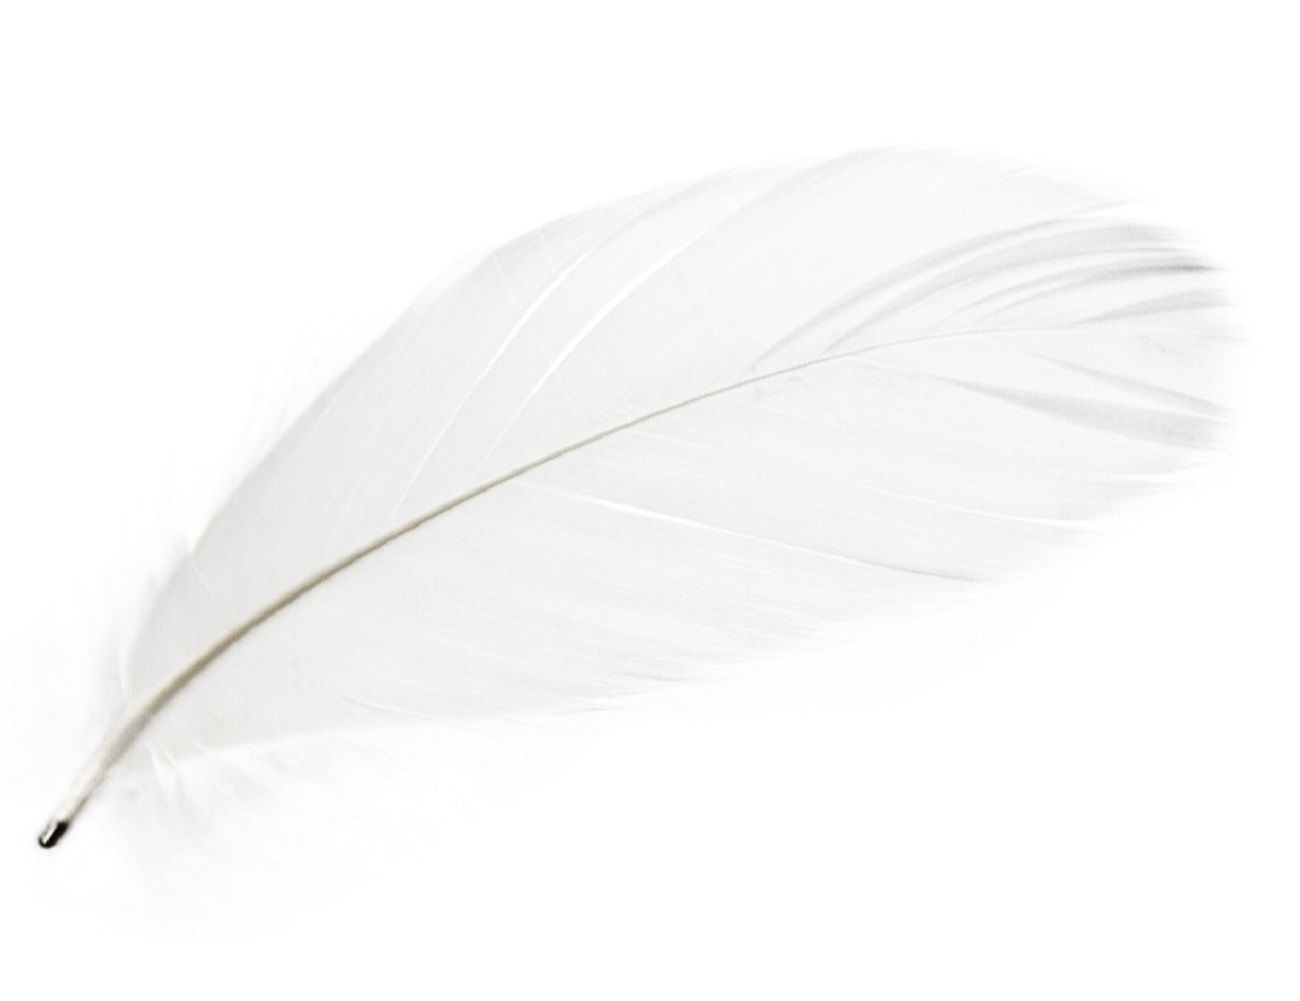 Magic Magnetic Feathers From Mineheart